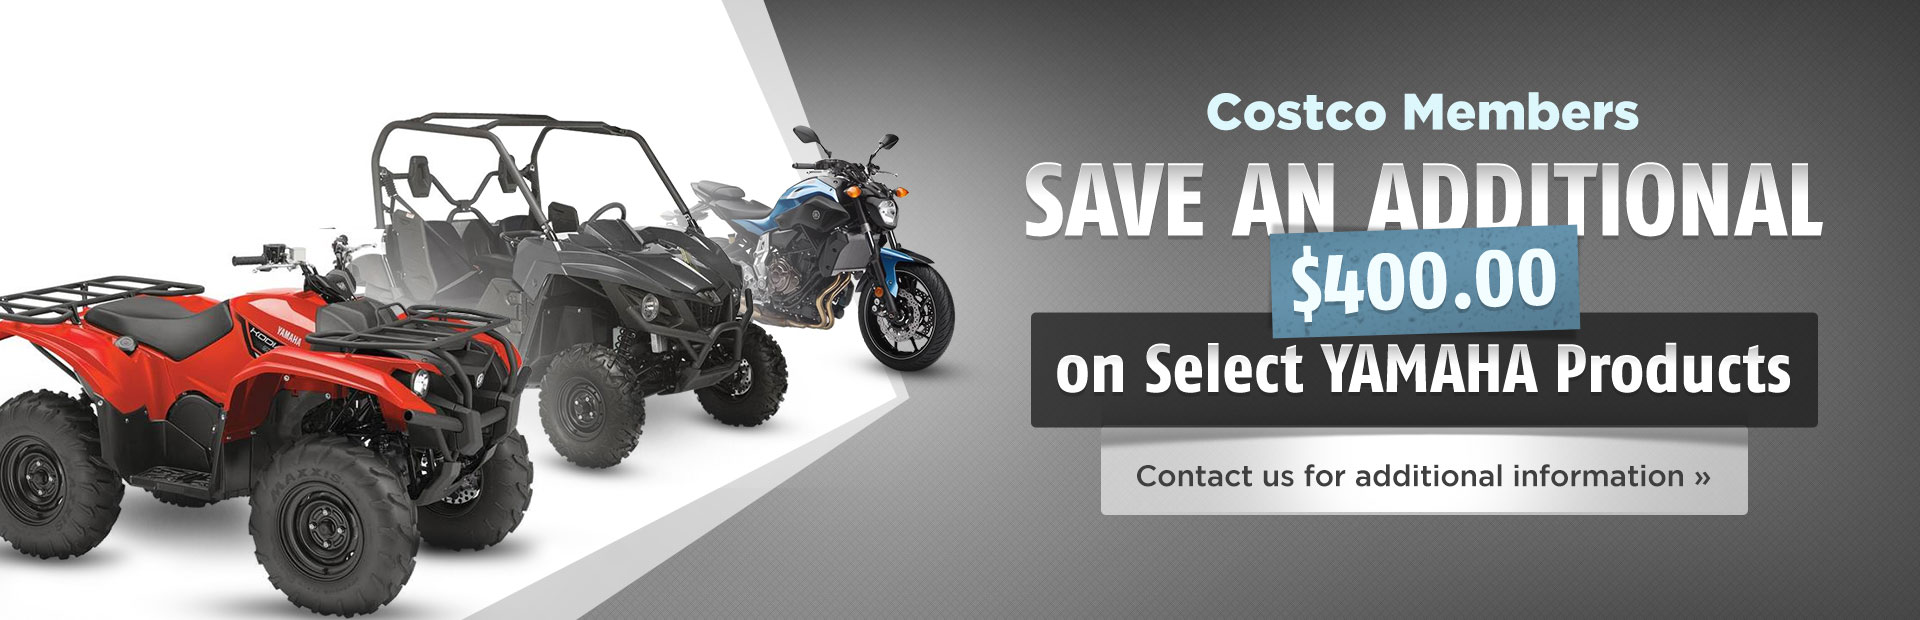 Costco Members: Save an additional $400.00 on select Yamaha products! Click here to contact us.